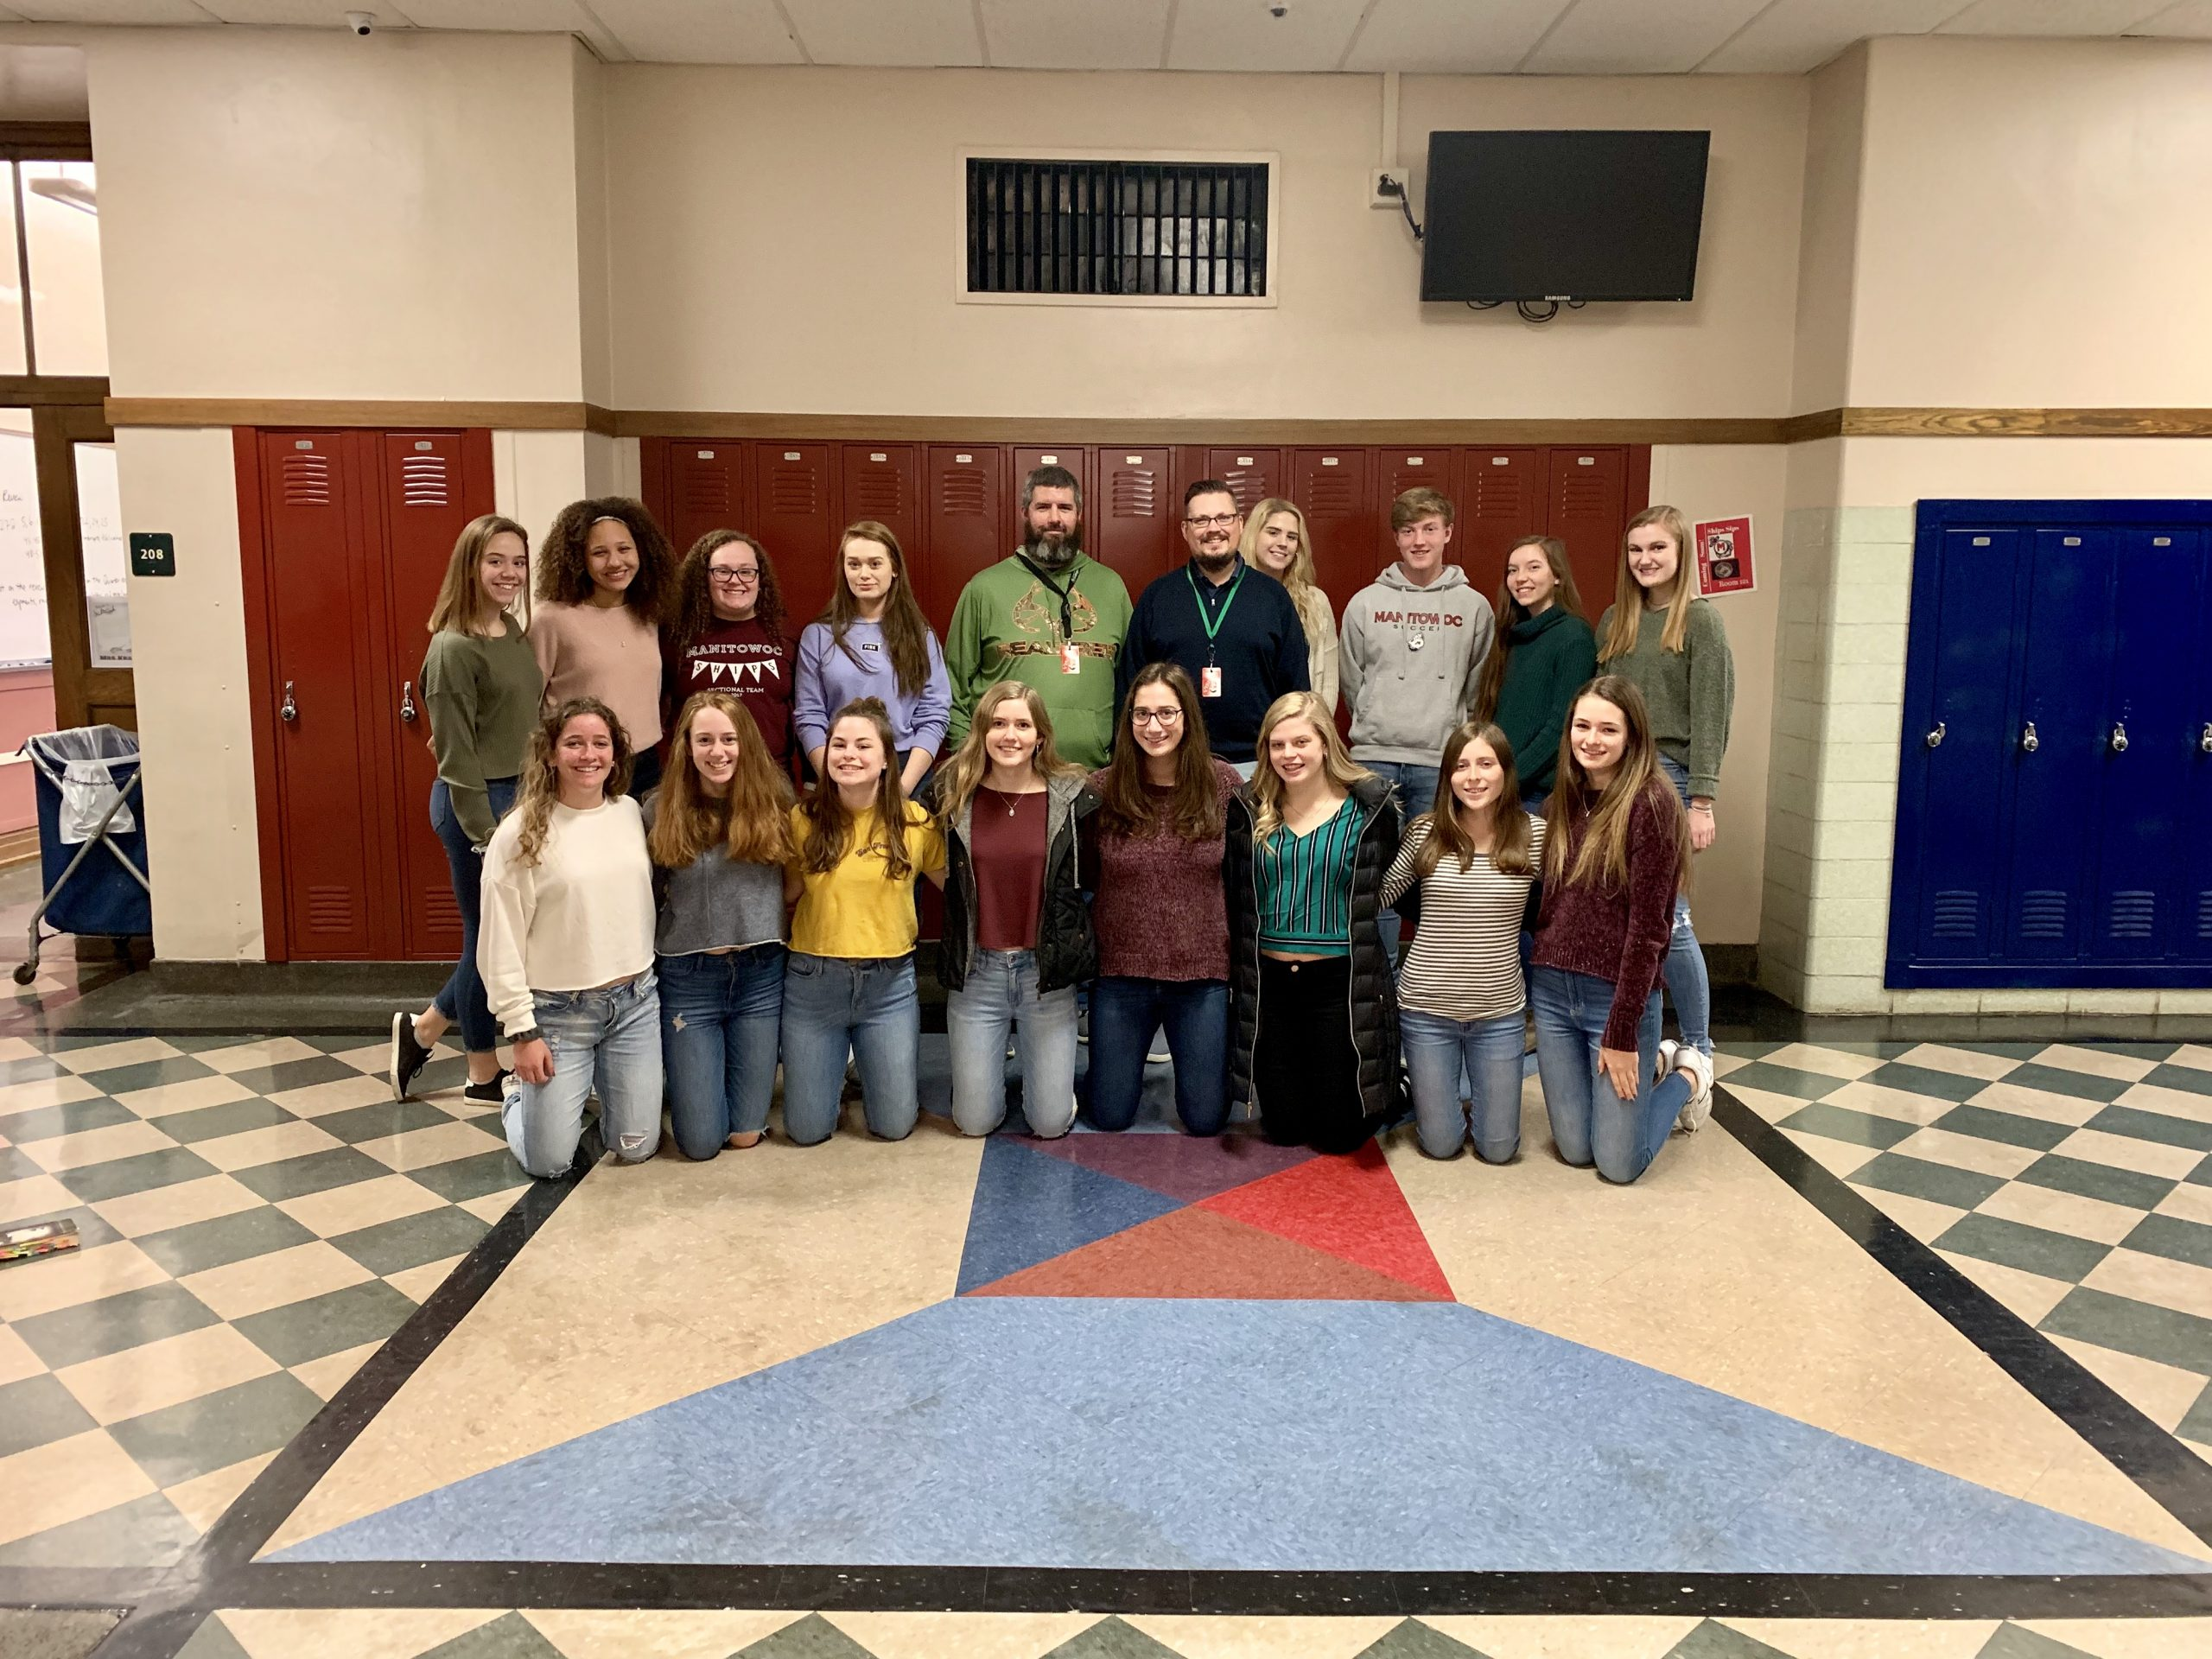 100 Club Raises Money For Big Brothers/Big Sisters and Sting Cancer Lincoln High School